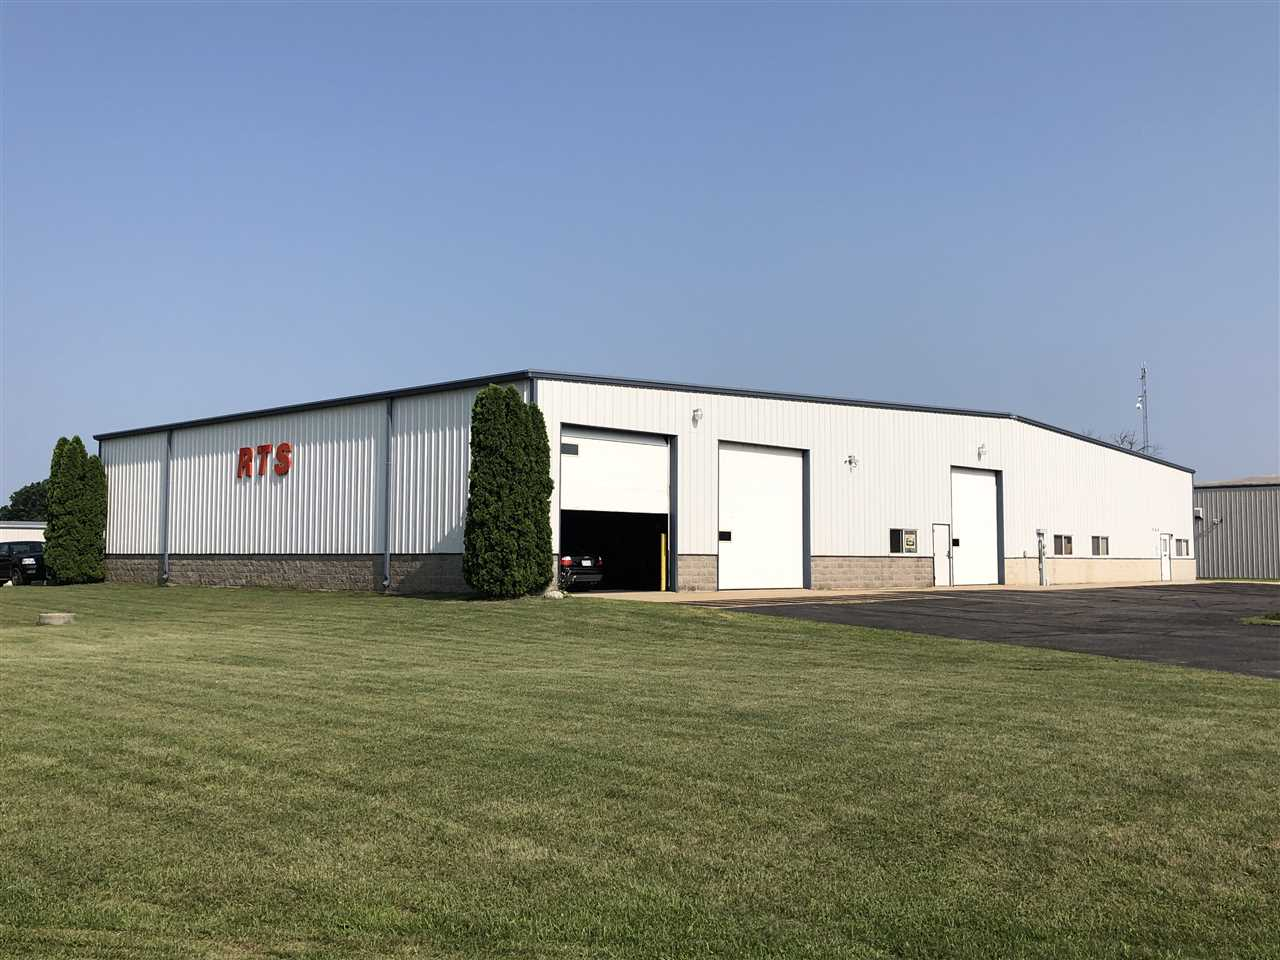 Warehouse FOR RENT $4,000/ month rent at 564 Water Street, Evansville, WI. 80' x 120'. 4- 14' x 12' overhead garage doors. 1 drive through bay, floor drains, 2 offices, 1 bathroom. Loft storage and large blacktop parking lot space available. Great condition! On the Truck route.